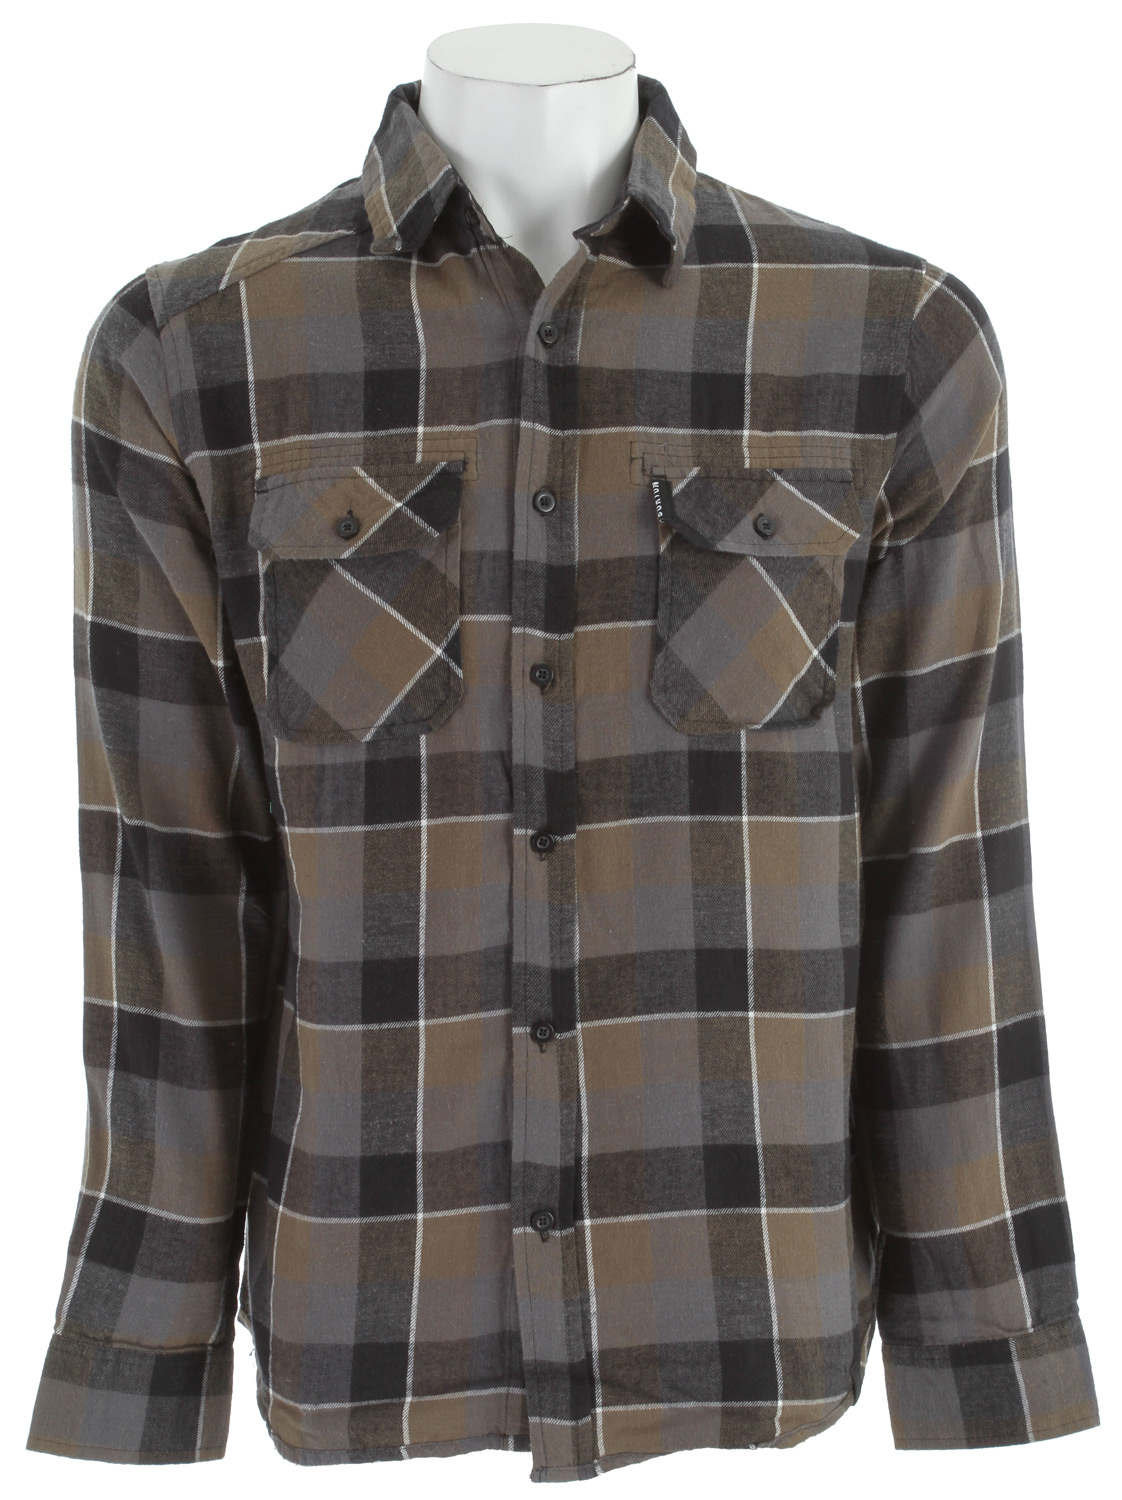 Snowboard Burton is a world-wide leader in snowboards and the Burton Brighton L/S Flannel Shirt is 100% cotton, yarn dyed, and has two front easy access chest pockets. Known for their signature fit-slim and not too constrictive for on the slope performance. This shirt layers nicely with most Burton outerwear for an up to date look whether on the mountain or around town. Machine washable for easy care, the Brighton also has a 30 day manufacturer's warranty.Key Features of the Burton Brighton L/S Flannel Shirt:  100% Cotton  Woven Yarn-Dyed Flannel with Chest Pockets  Reverse French Seams   Sig Fit - $14.95